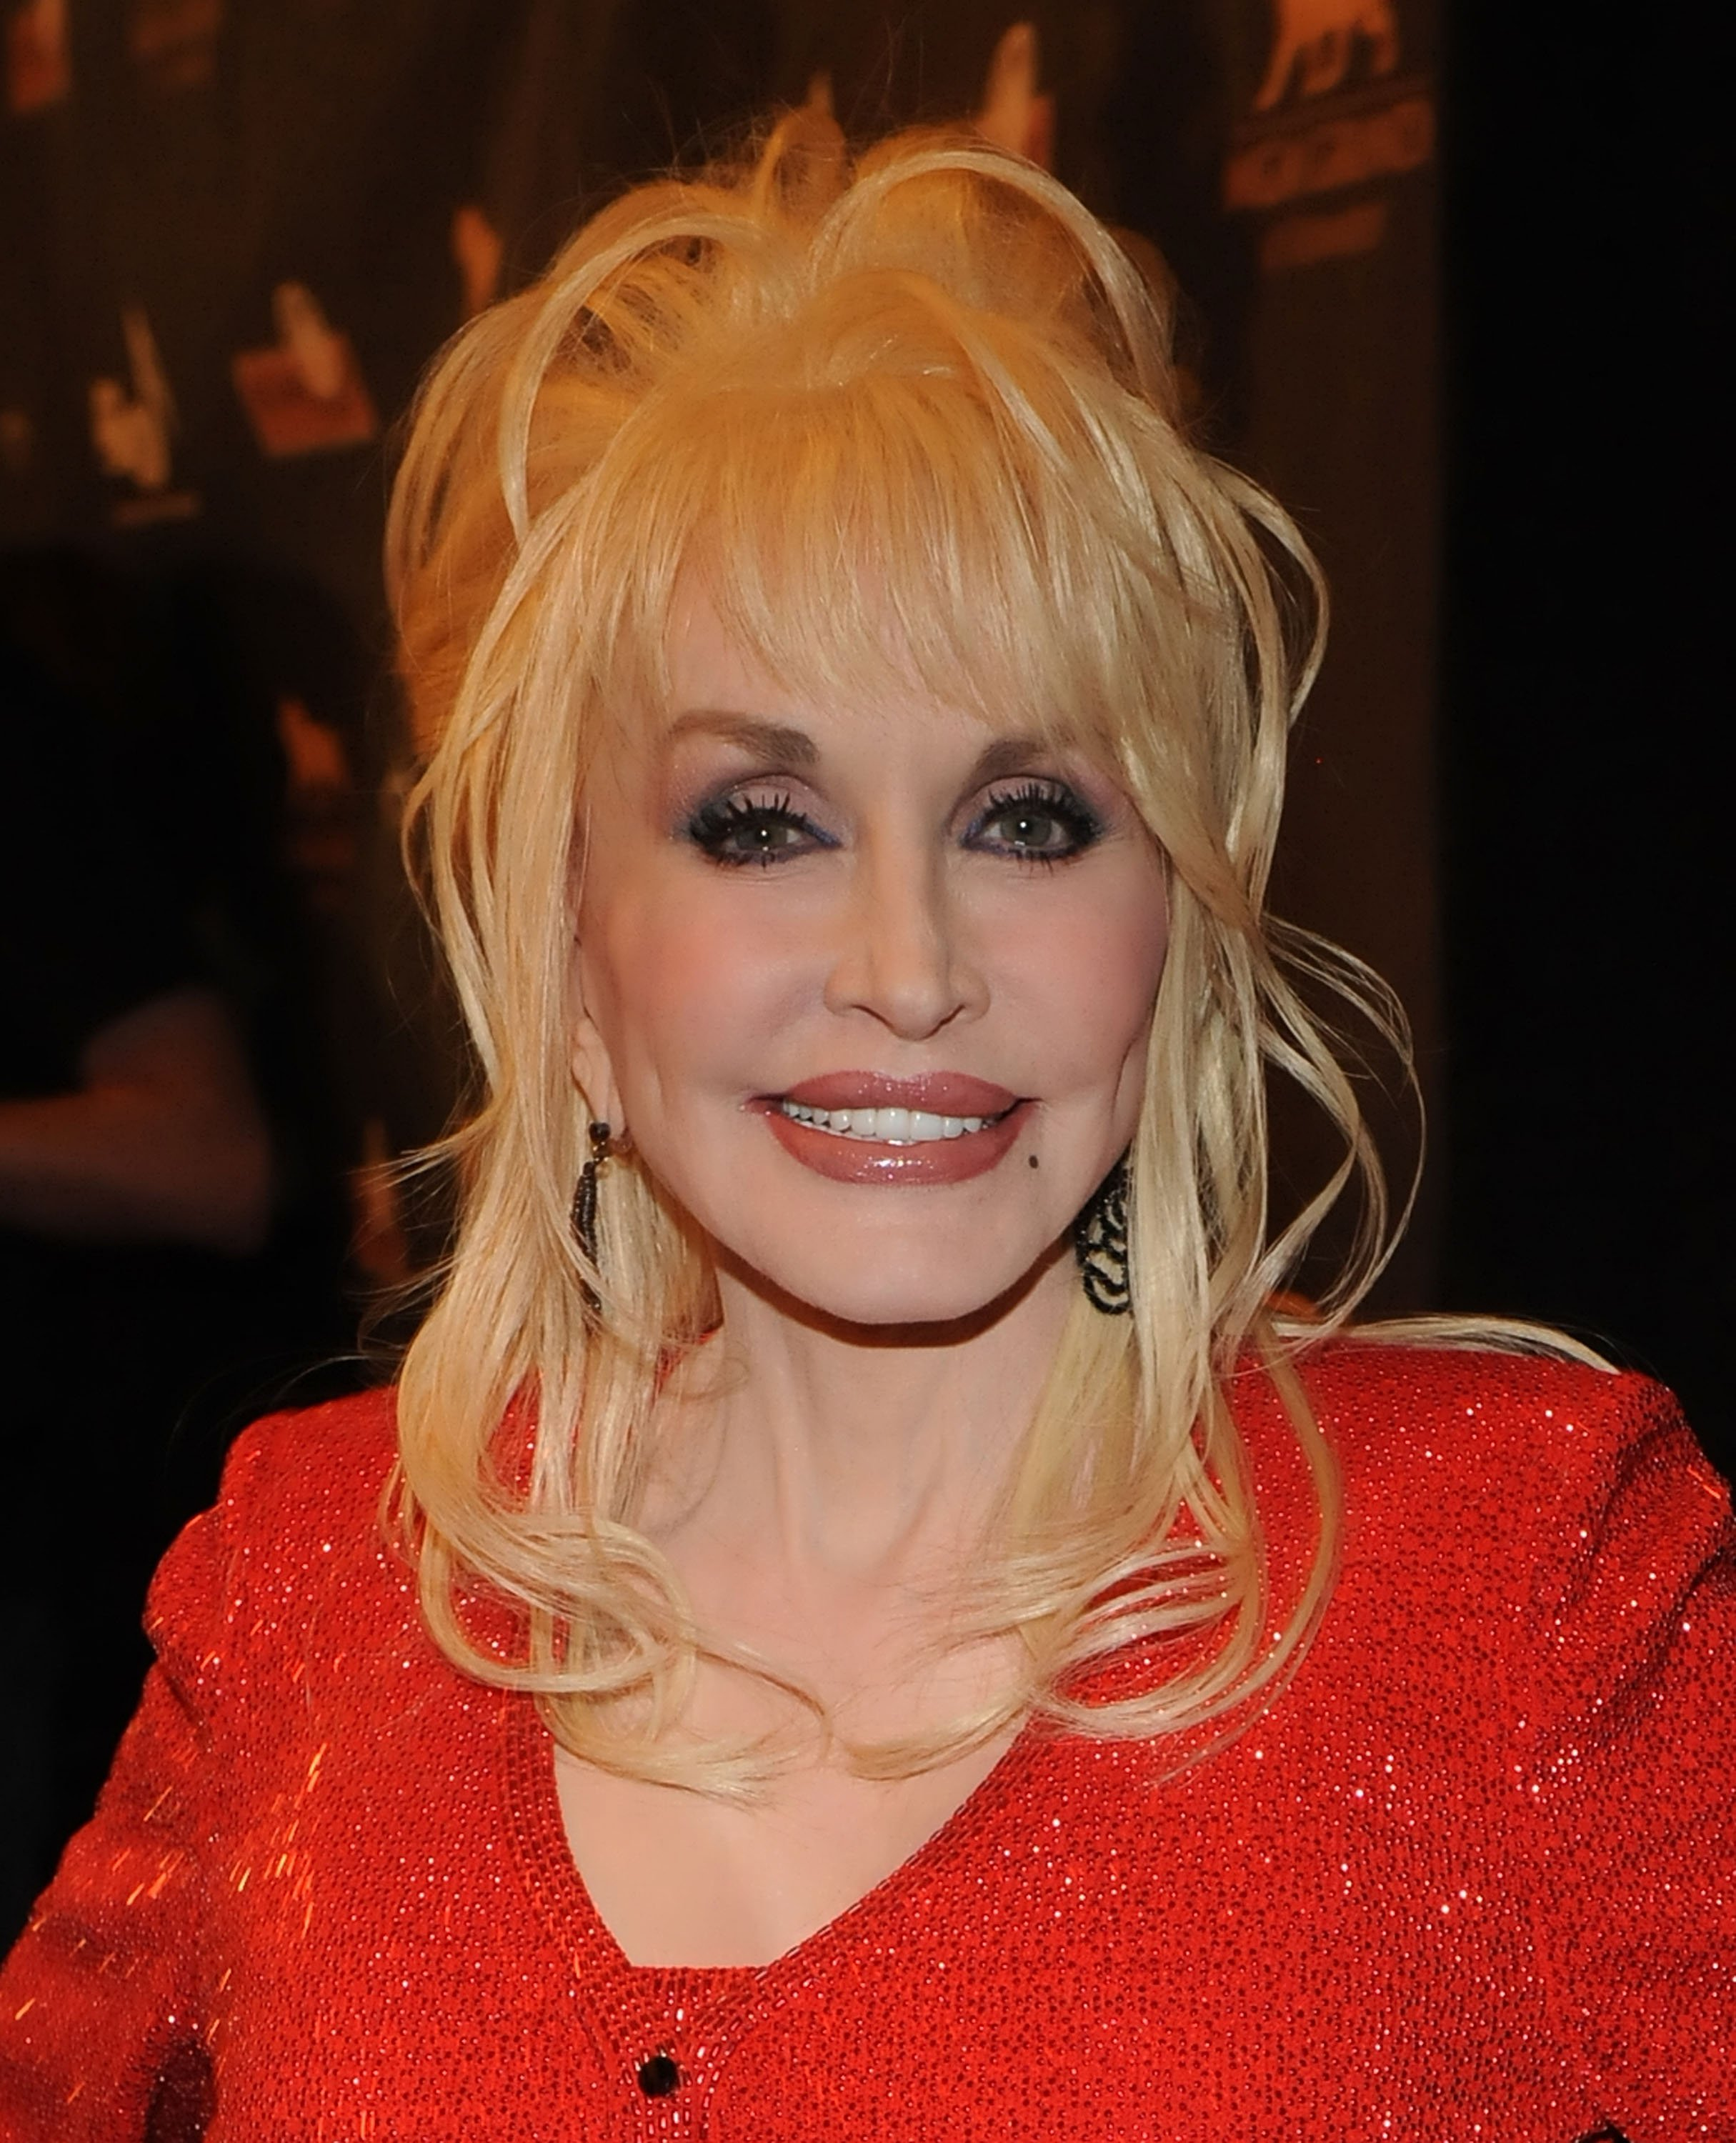 Image Credits: Getty Images / Rick Diamond | Singer/Songwriter Dolly Parton attends the Kenny Rogers: The First 50 Years award show at the MGM Grand at Foxwoods on April 10, 2010 in Ledyard Center, Connecticut.